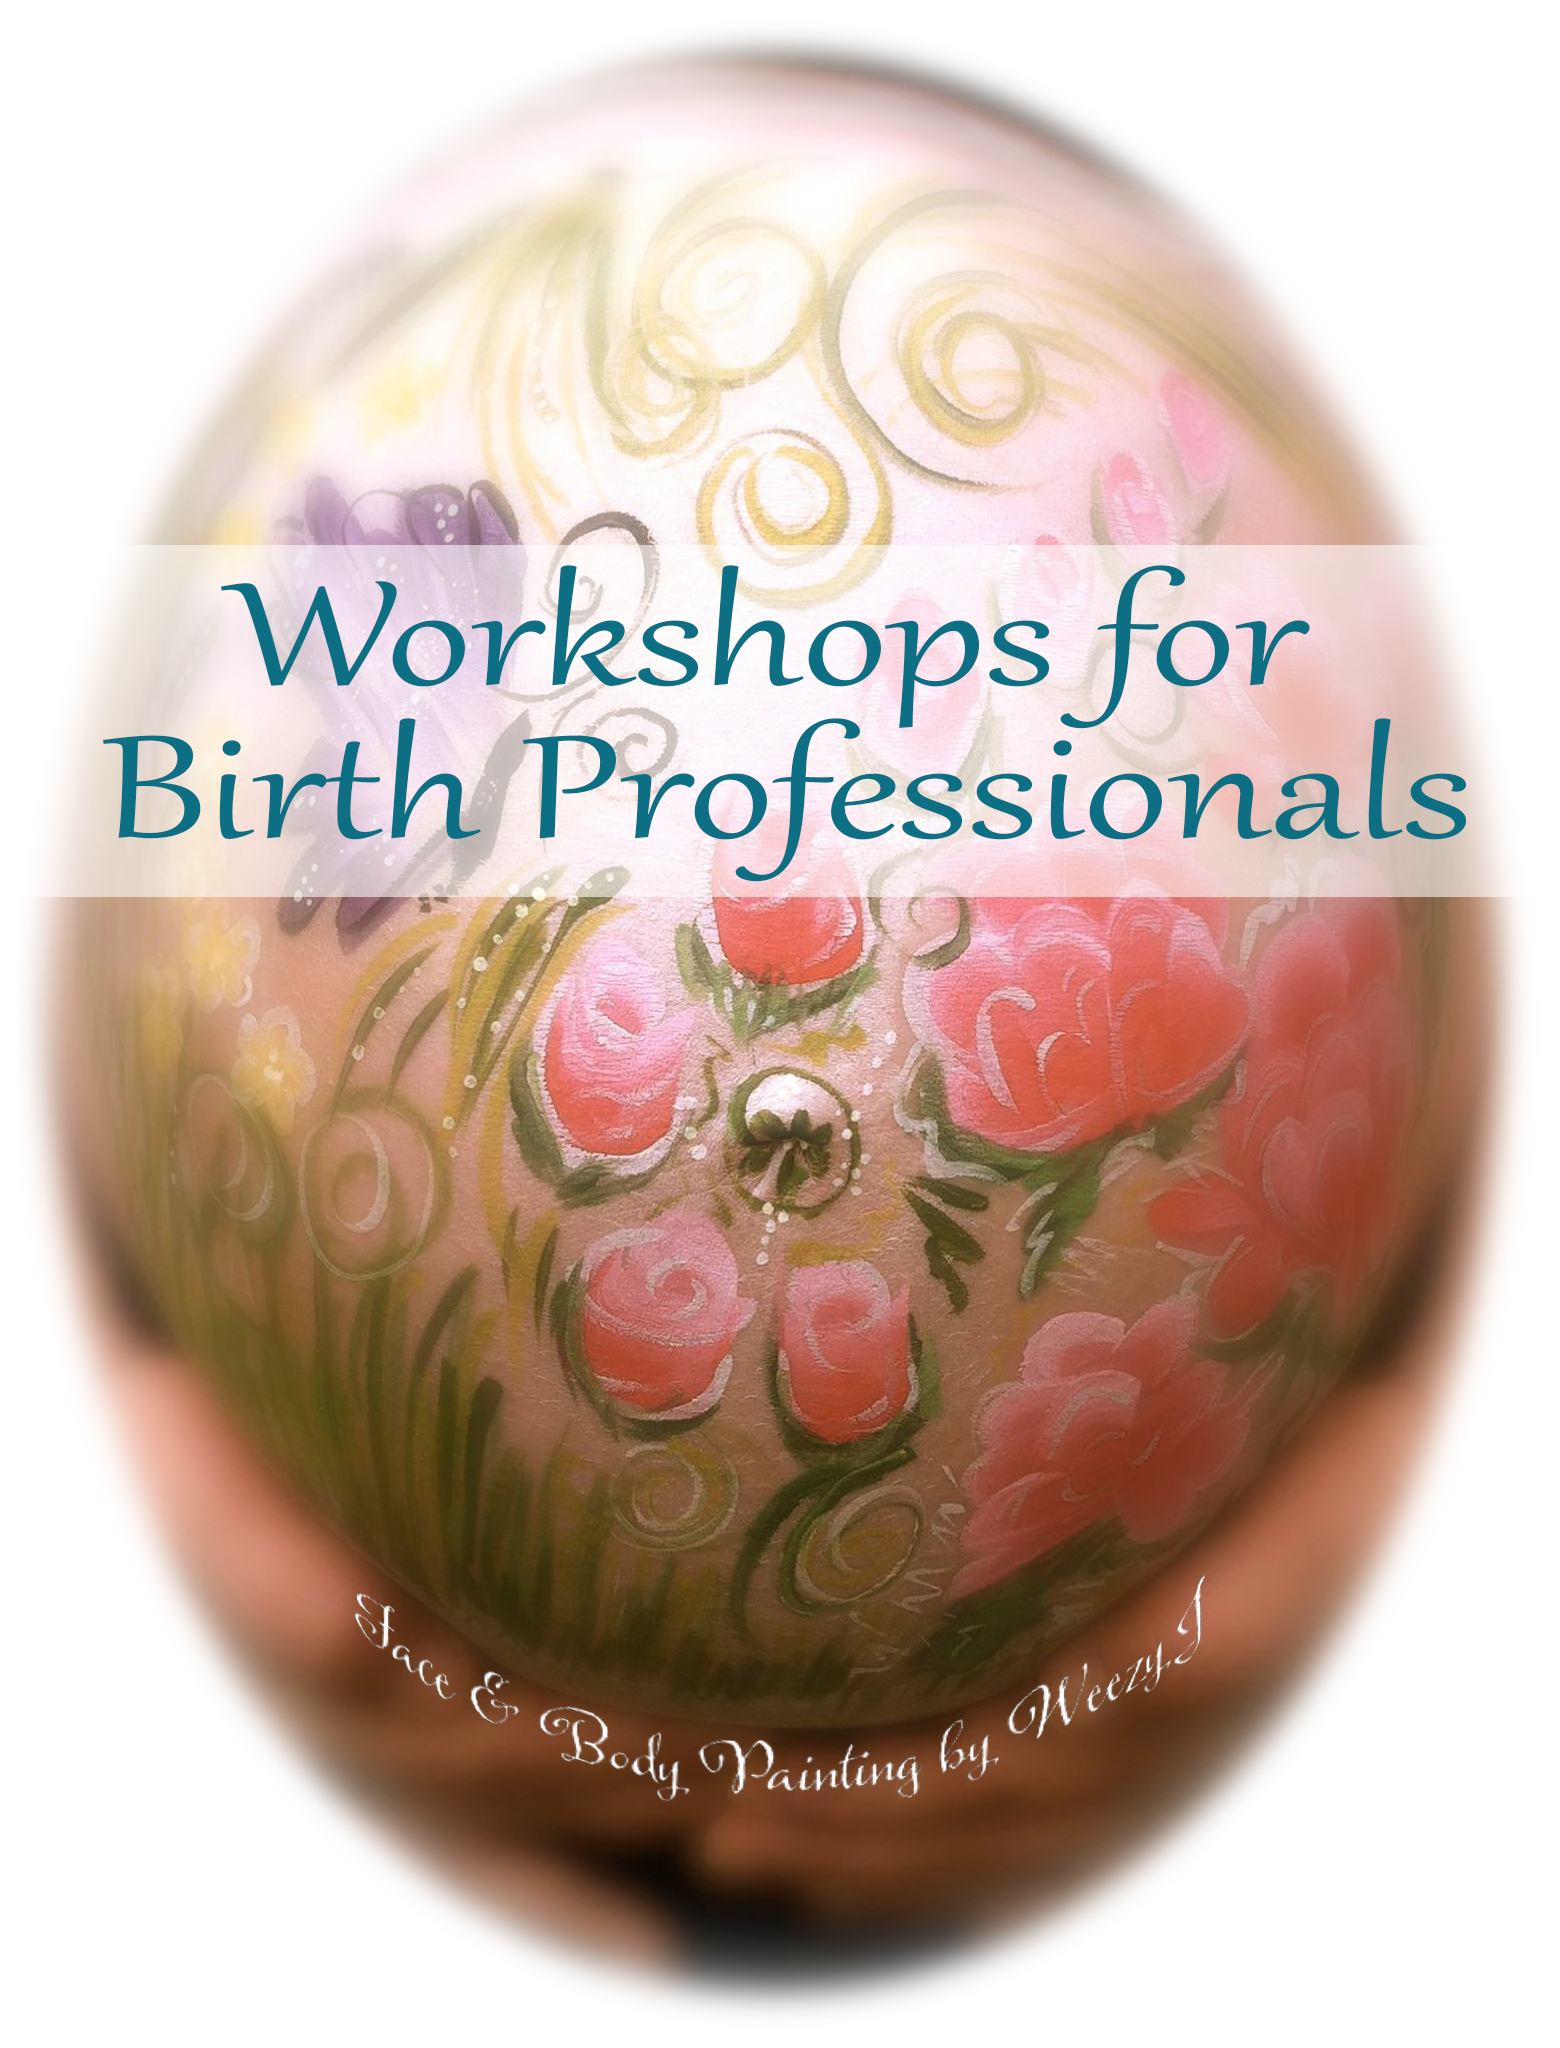 Workshops for Birth Professionals